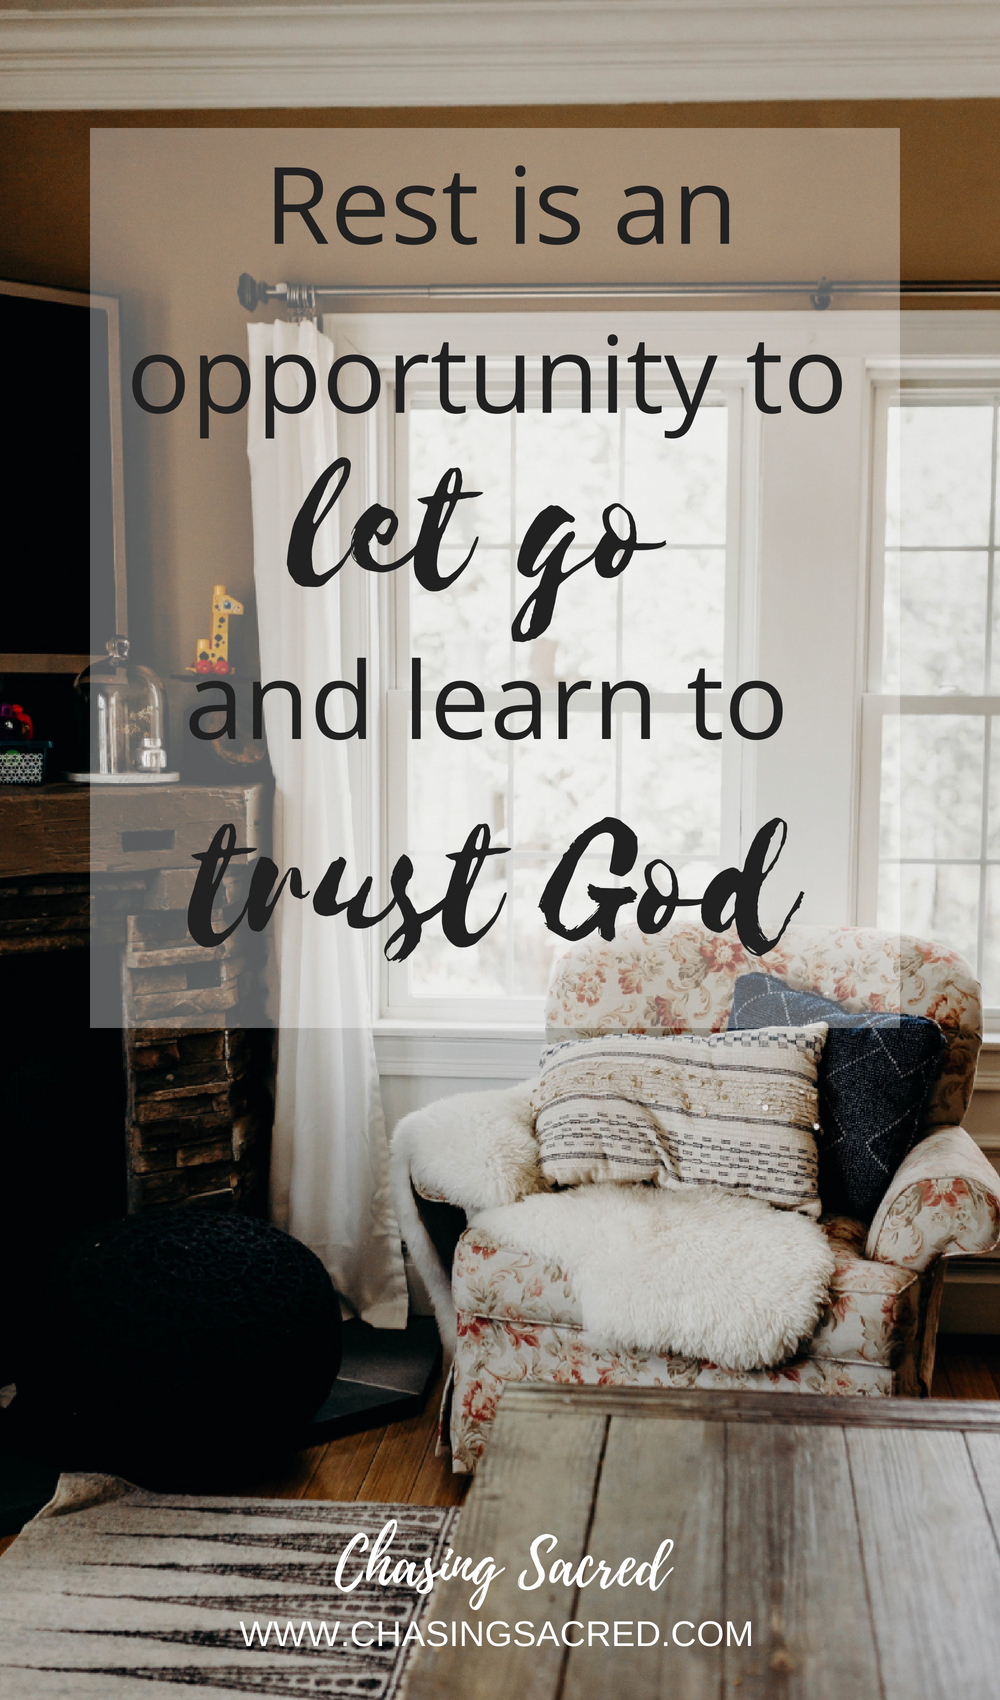 Rest is an opportunity to let go and learn to trust God | Chasing Sacred